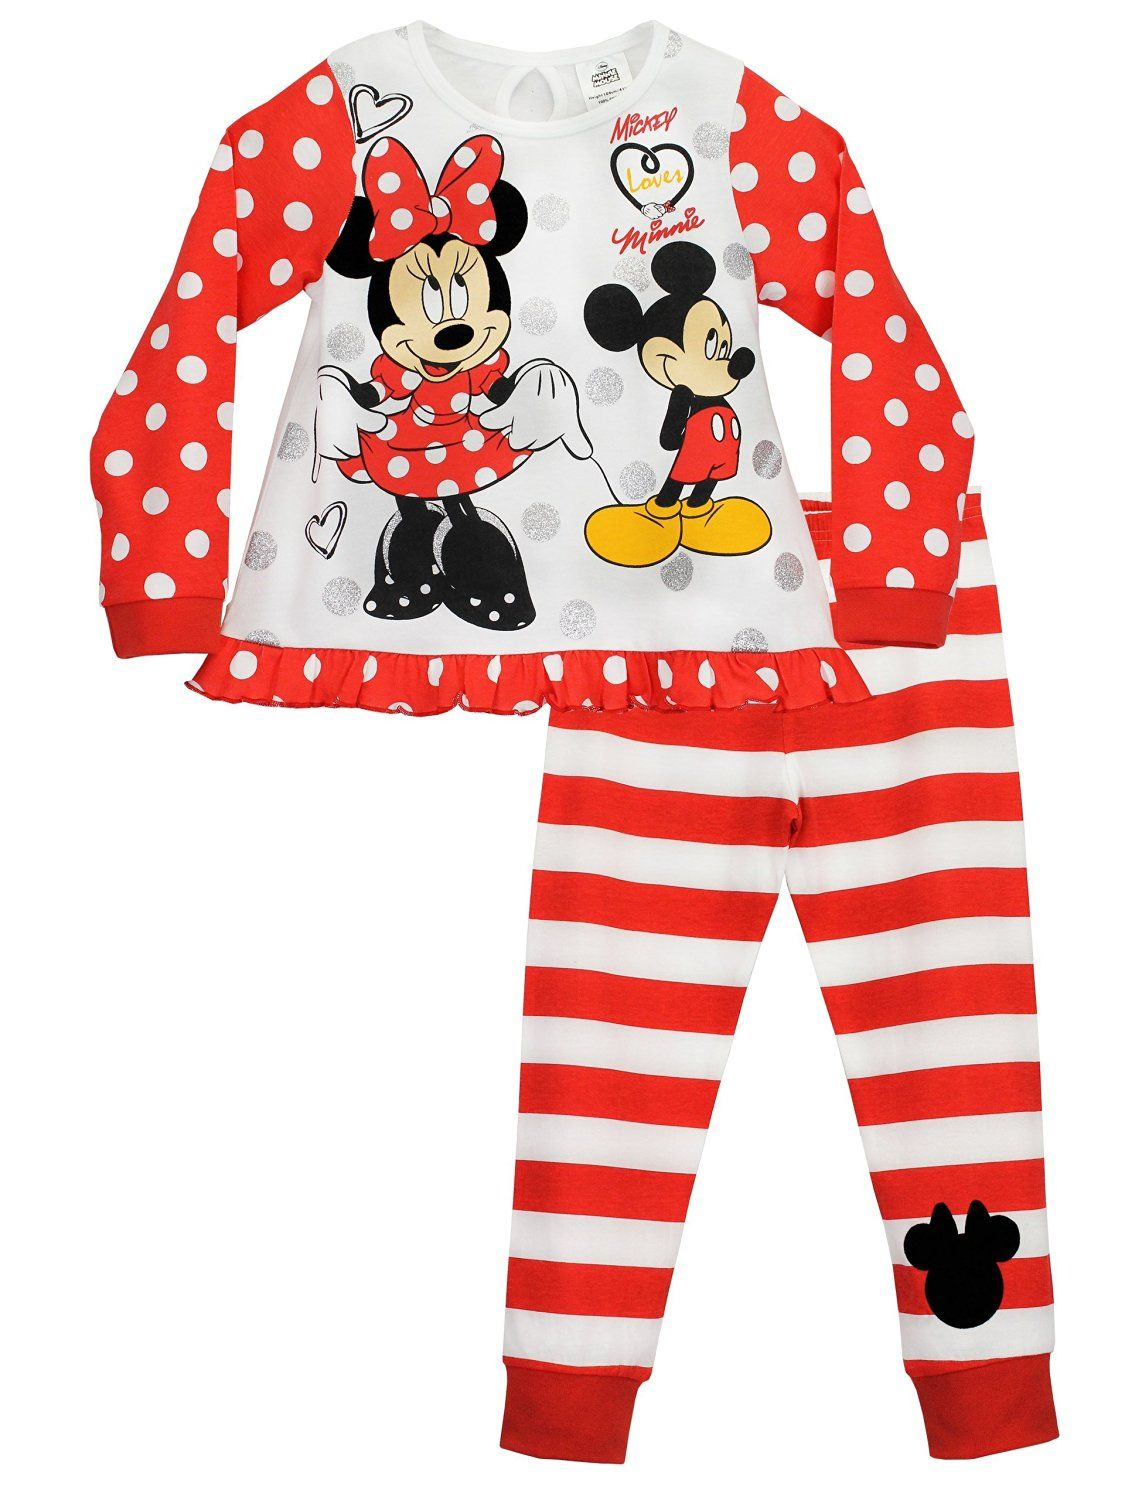 ec39510c80 Disney Minnie Mouse - Pijama para niñas - Minnie Mouse  Amazon.es  Ropa y…